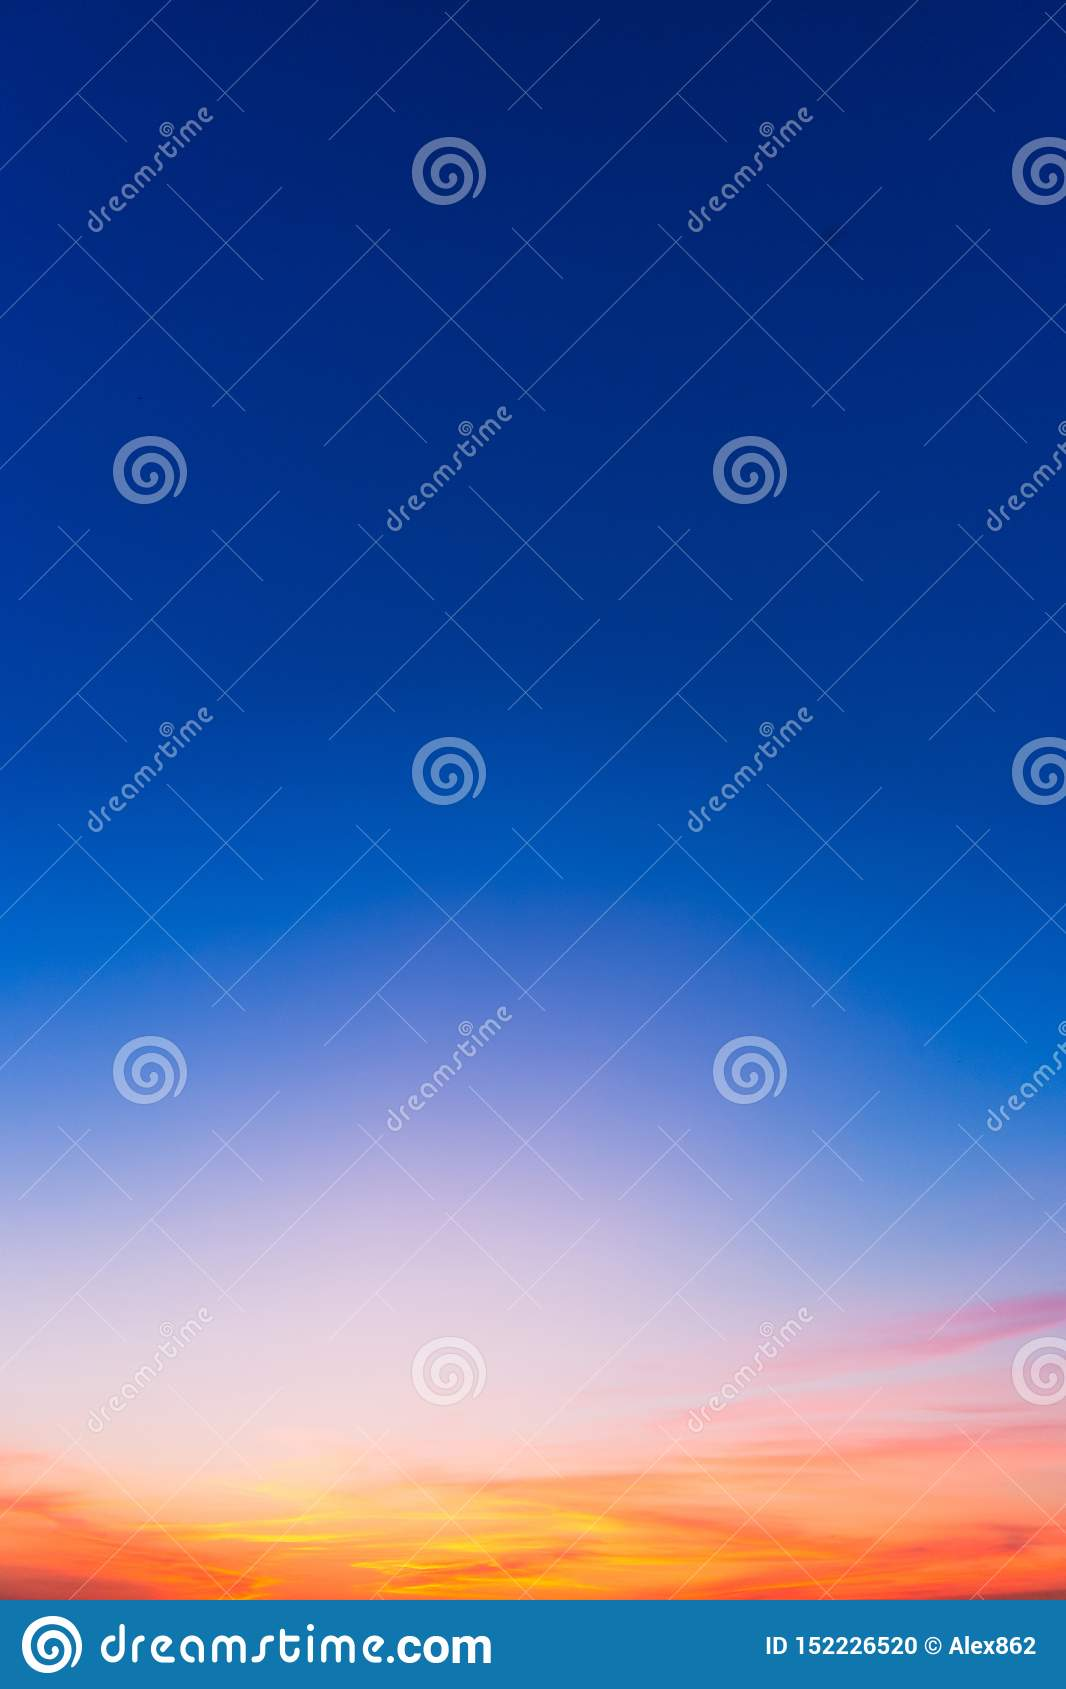 Sunset background with blue, red and yellow colors